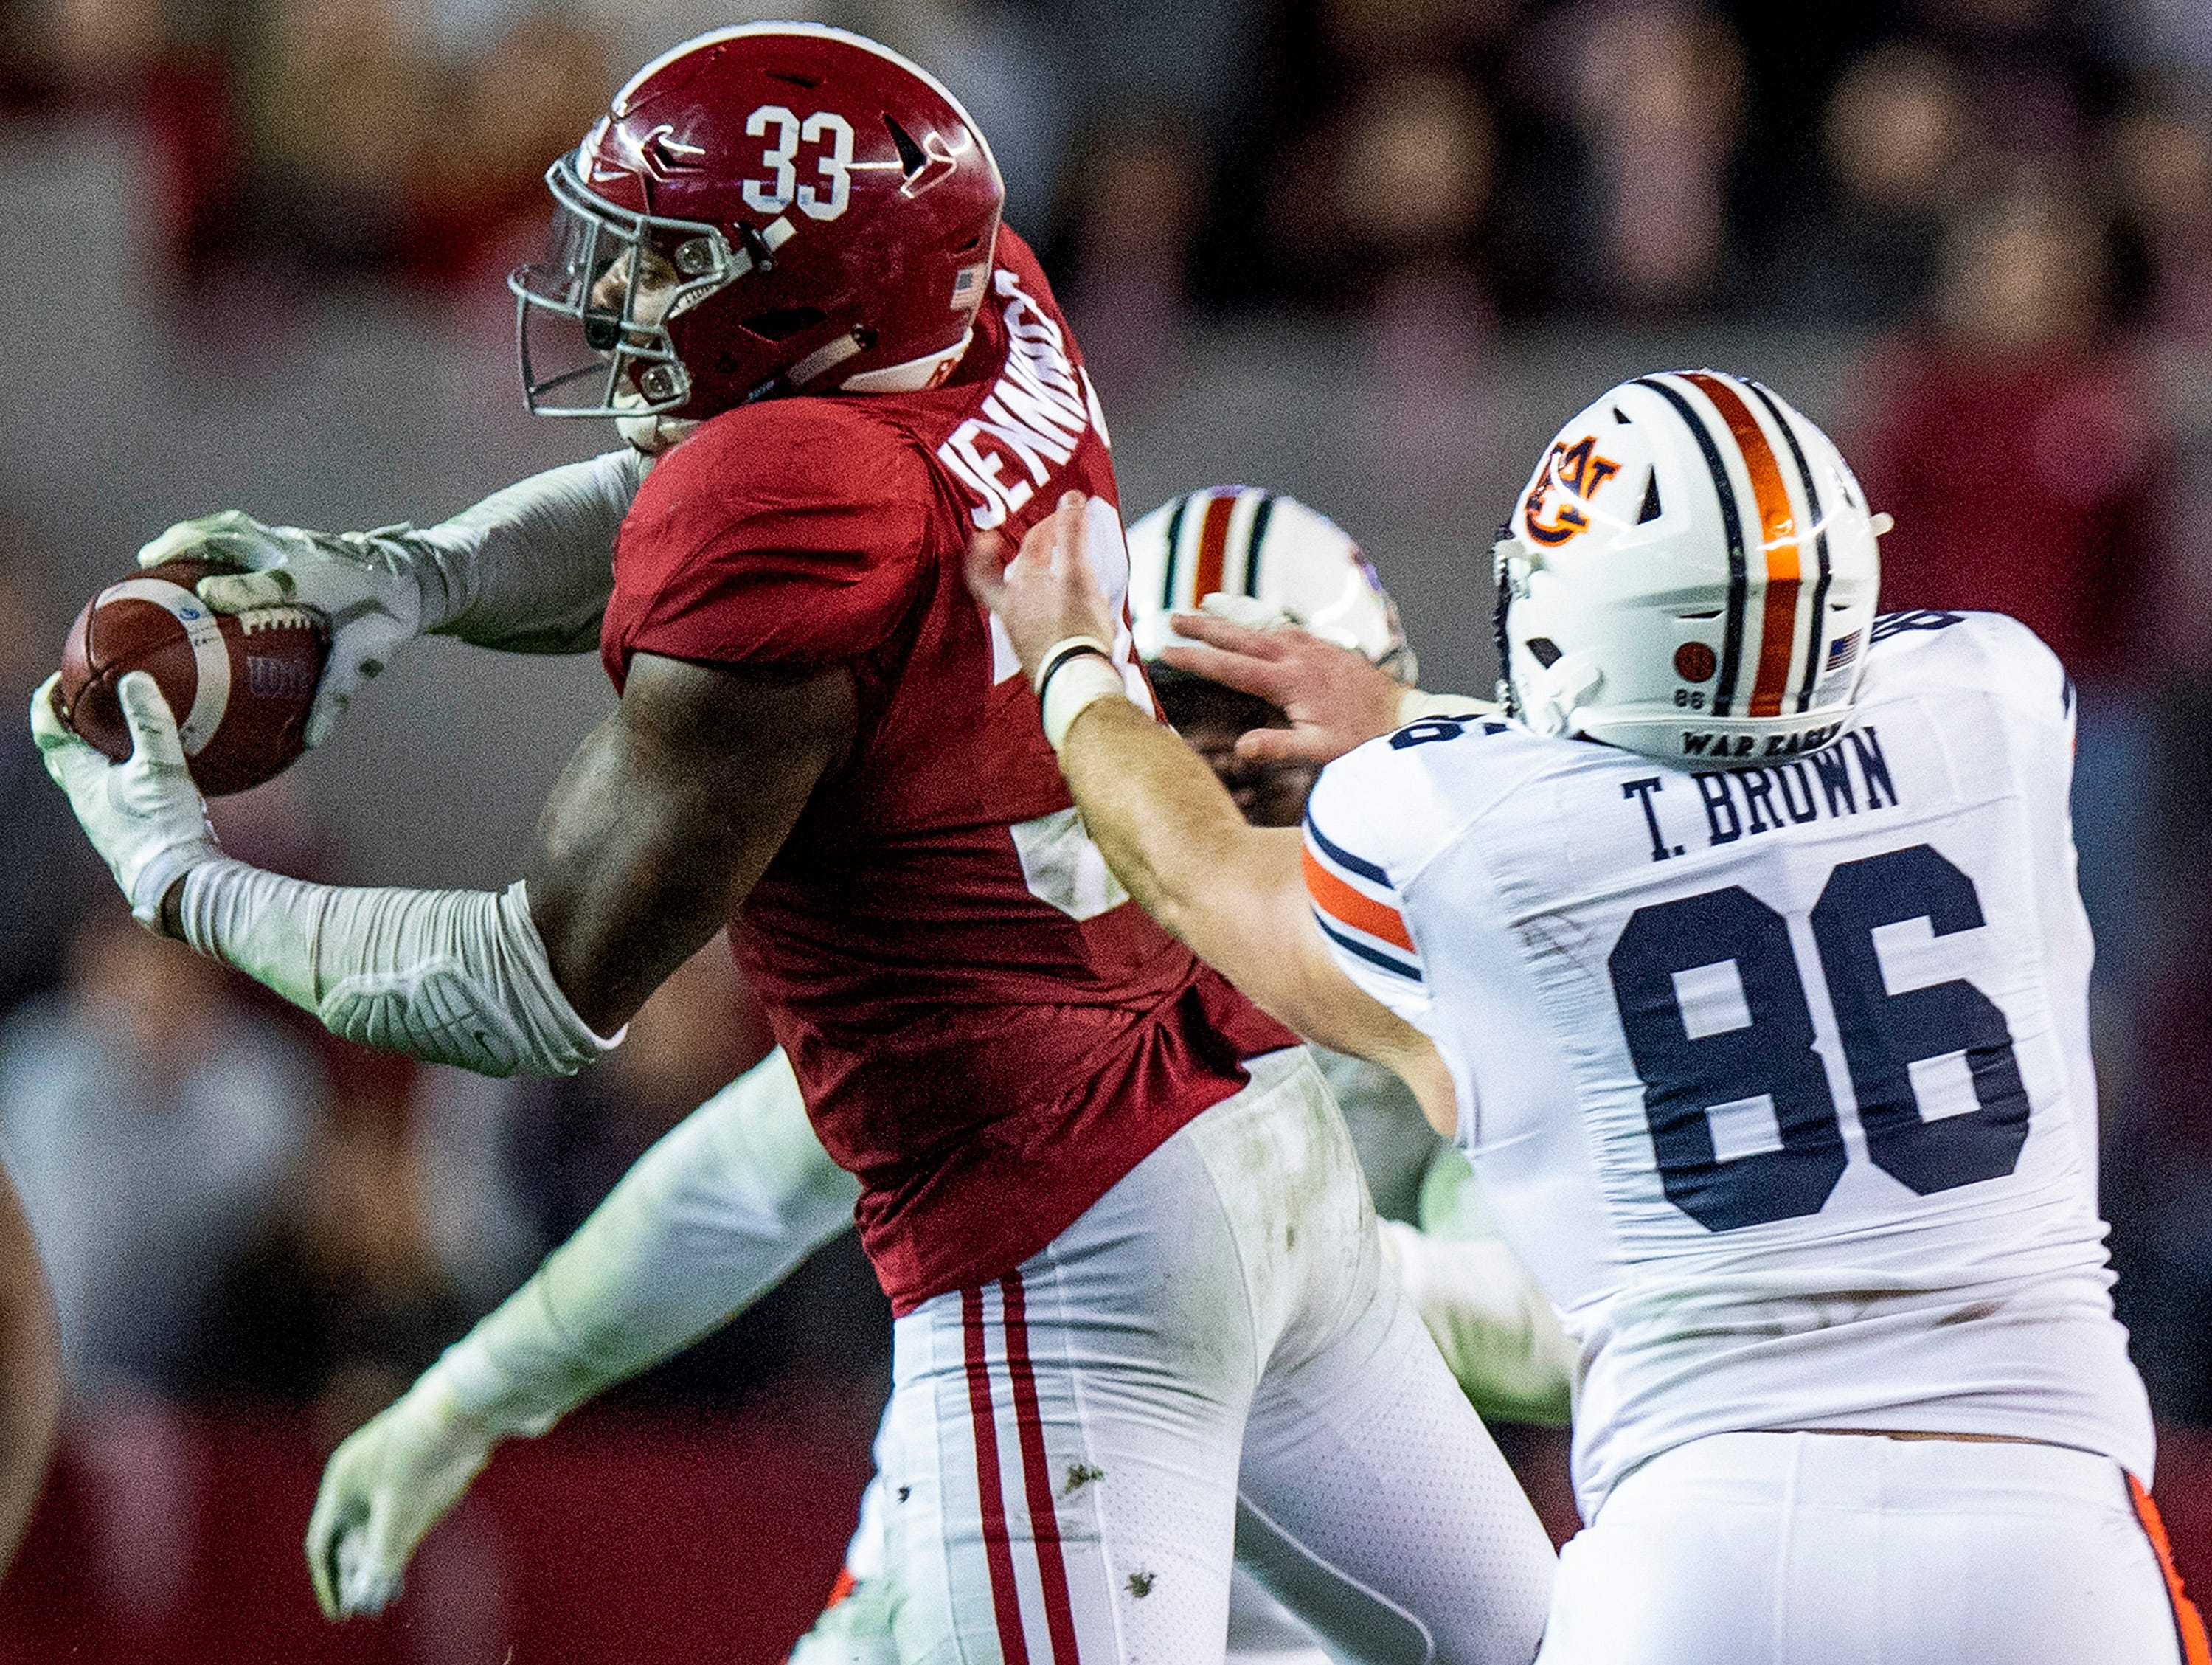 Alabama linebacker Anfernee Jennings (33) intercepts a pass intended for Auburn tight end Tucker Brown (86) in second half action during the Iron Bowl at Bryant-Denny Stadium in Tuscaloosa, Ala., on Saturday November 24, 2018.